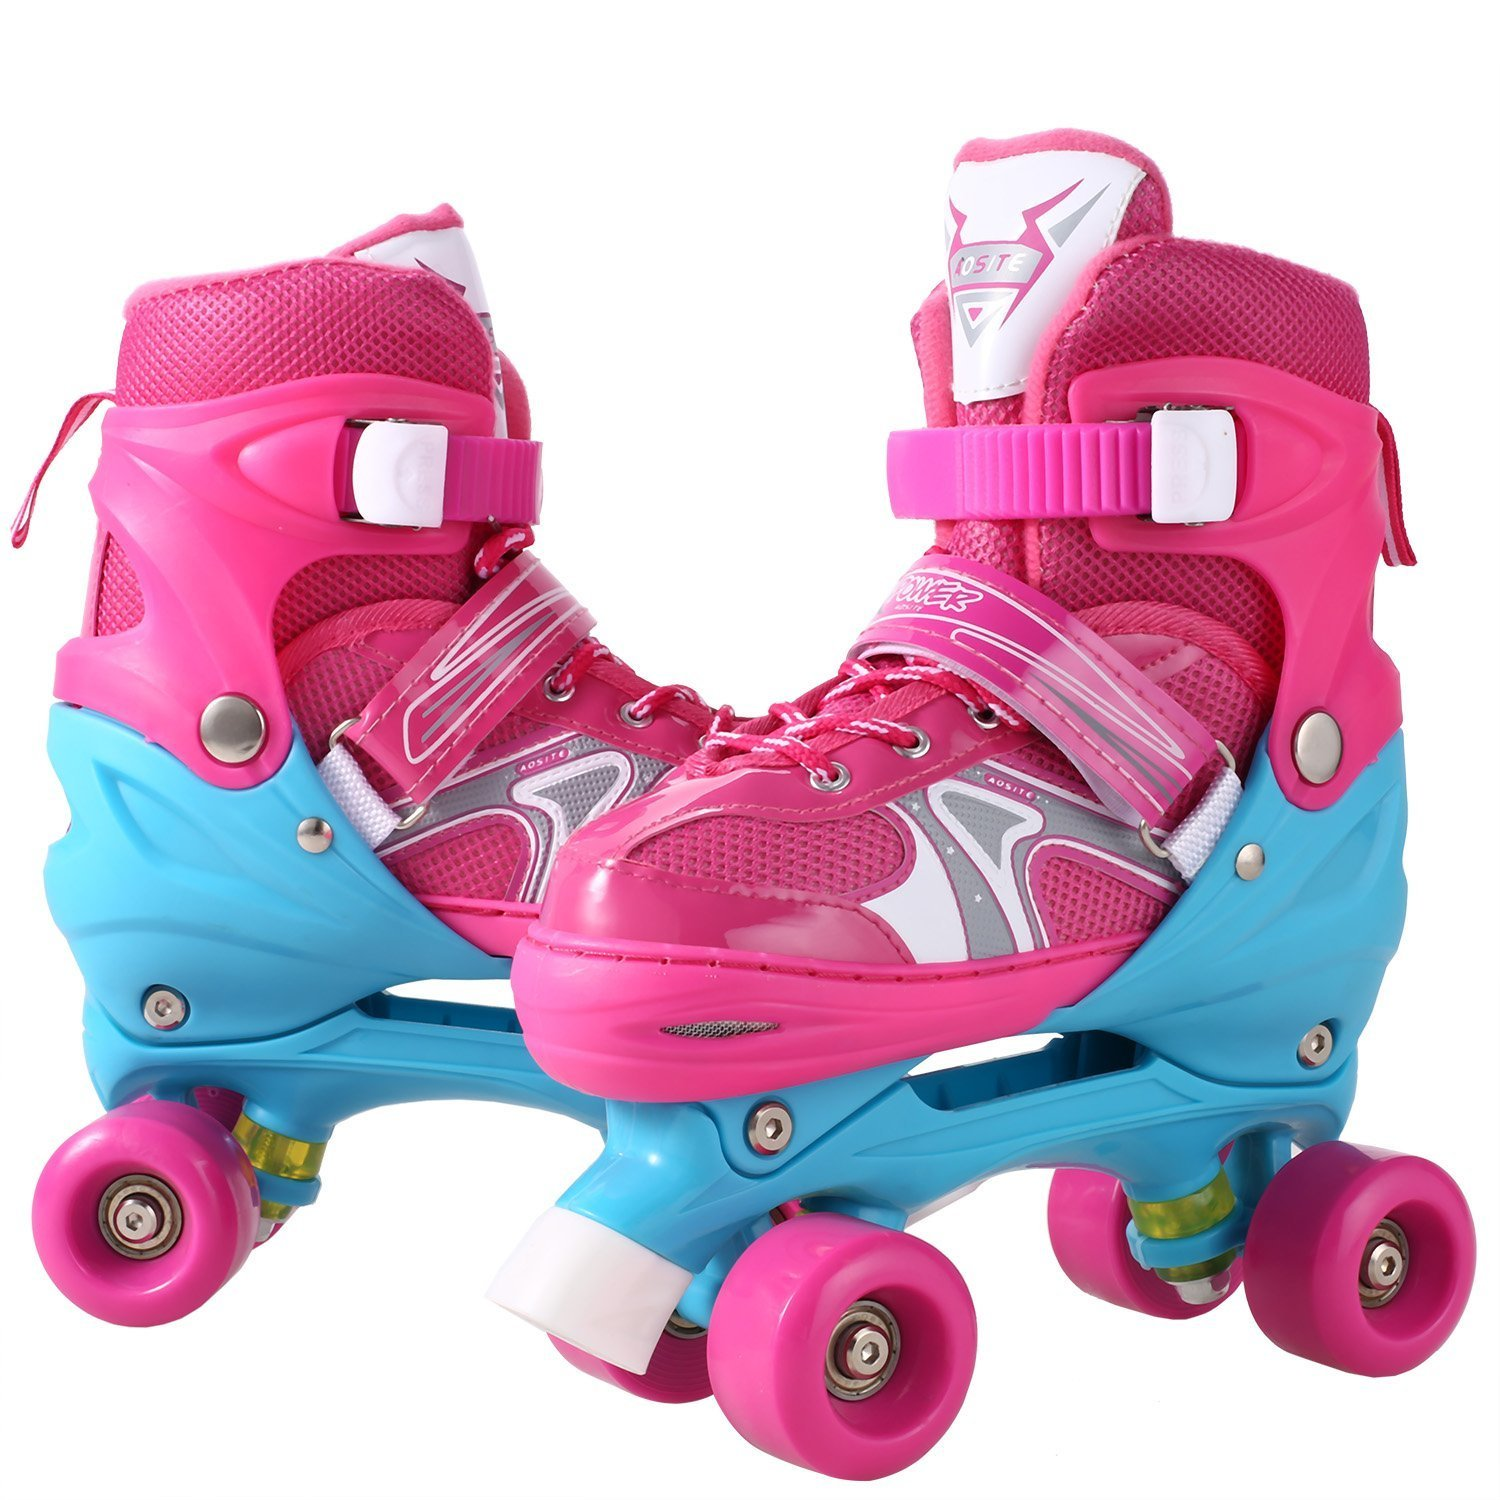 Dtemple Christmas Gifts New Year Gifts Adjustable Double Row Skate Aluminum Breathable PU Mesh Roller Skates for Indoor Outdoor (pink, 12J-2)